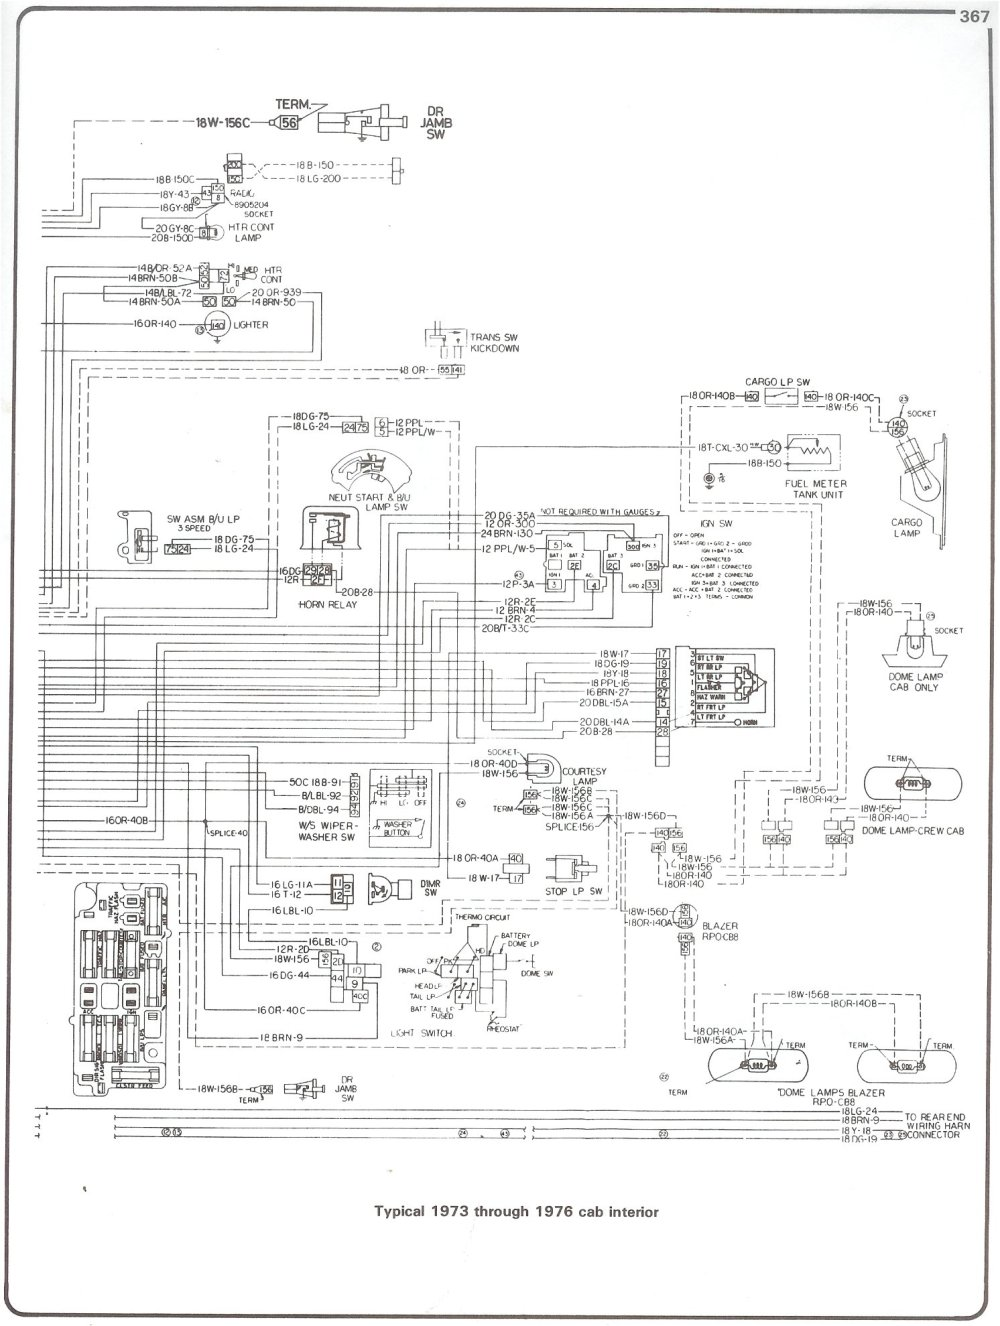 medium resolution of complete 73 87 wiring diagrams k5 blazer parts 73 k5 blazer wiring diagram